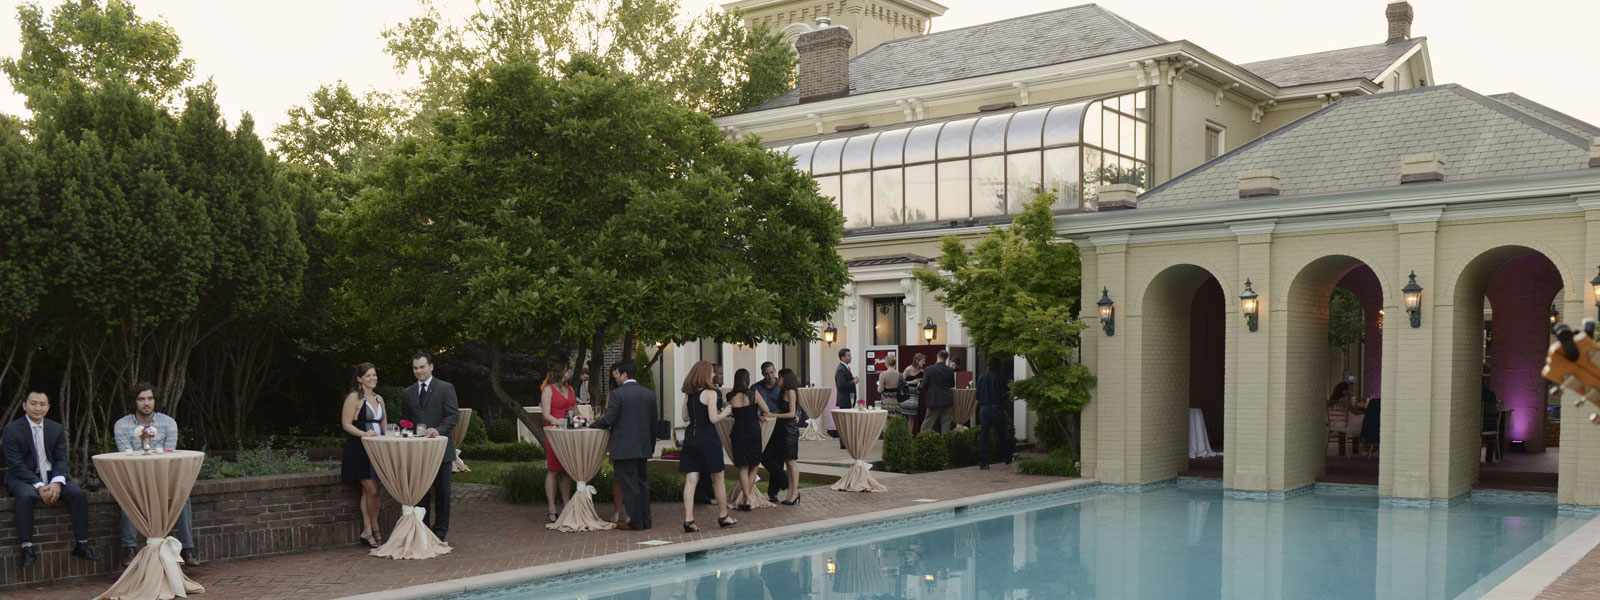 Nashville tn 1 weddings and events venue east ivy mansion junglespirit